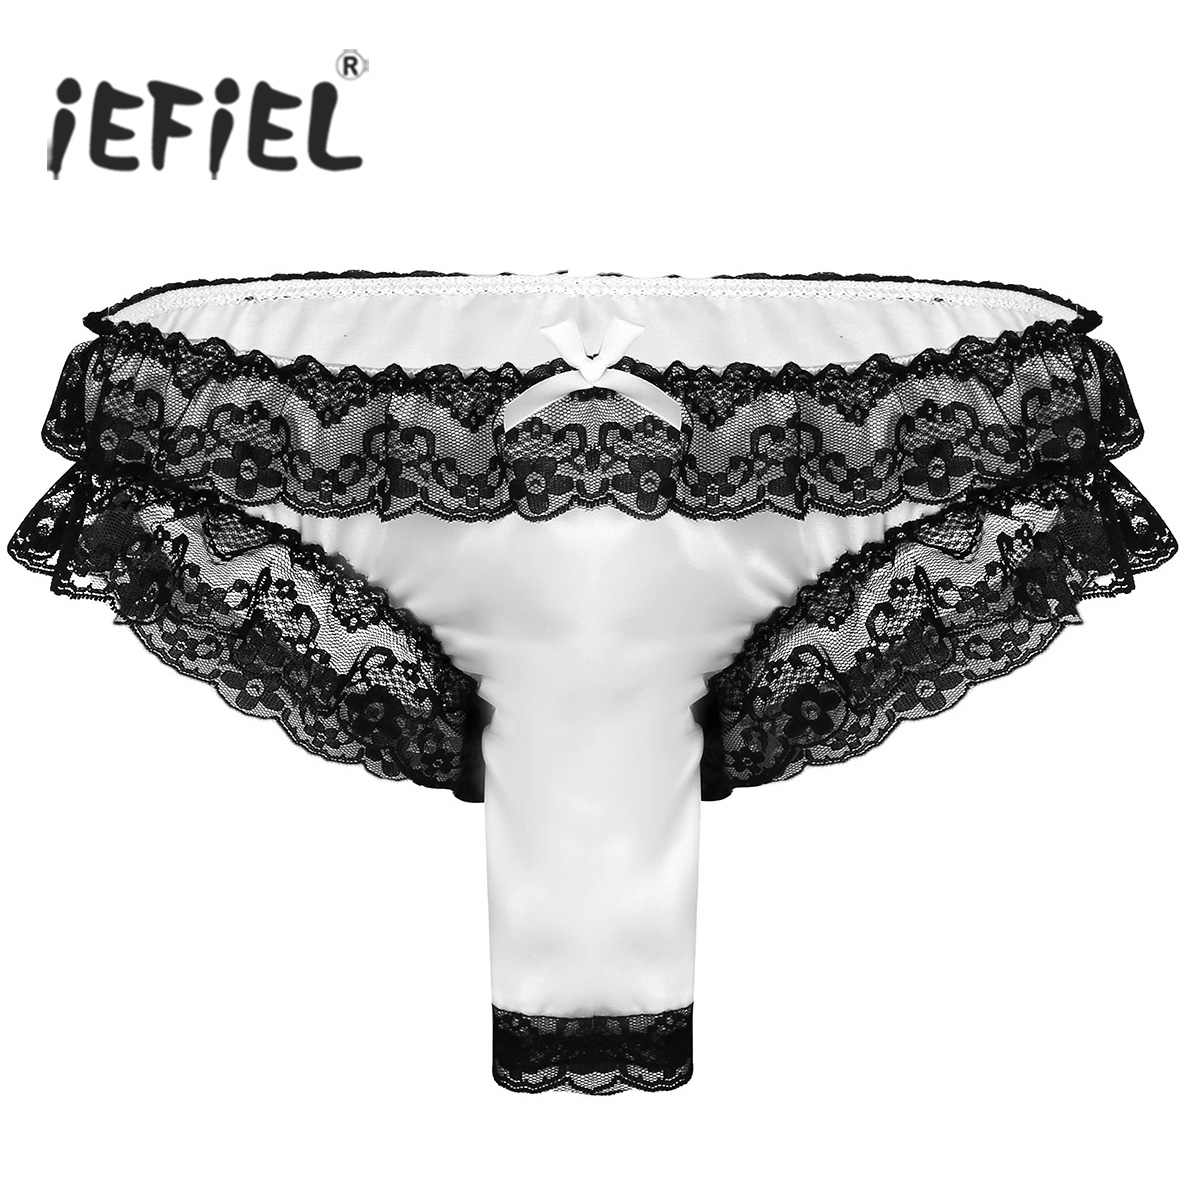 Mens Lingerie Underwear Soft Shiny Satin Lace High Cut Frilly Sexy Briefs Underwear Gay Sissy Panties for Male with Open Sheath